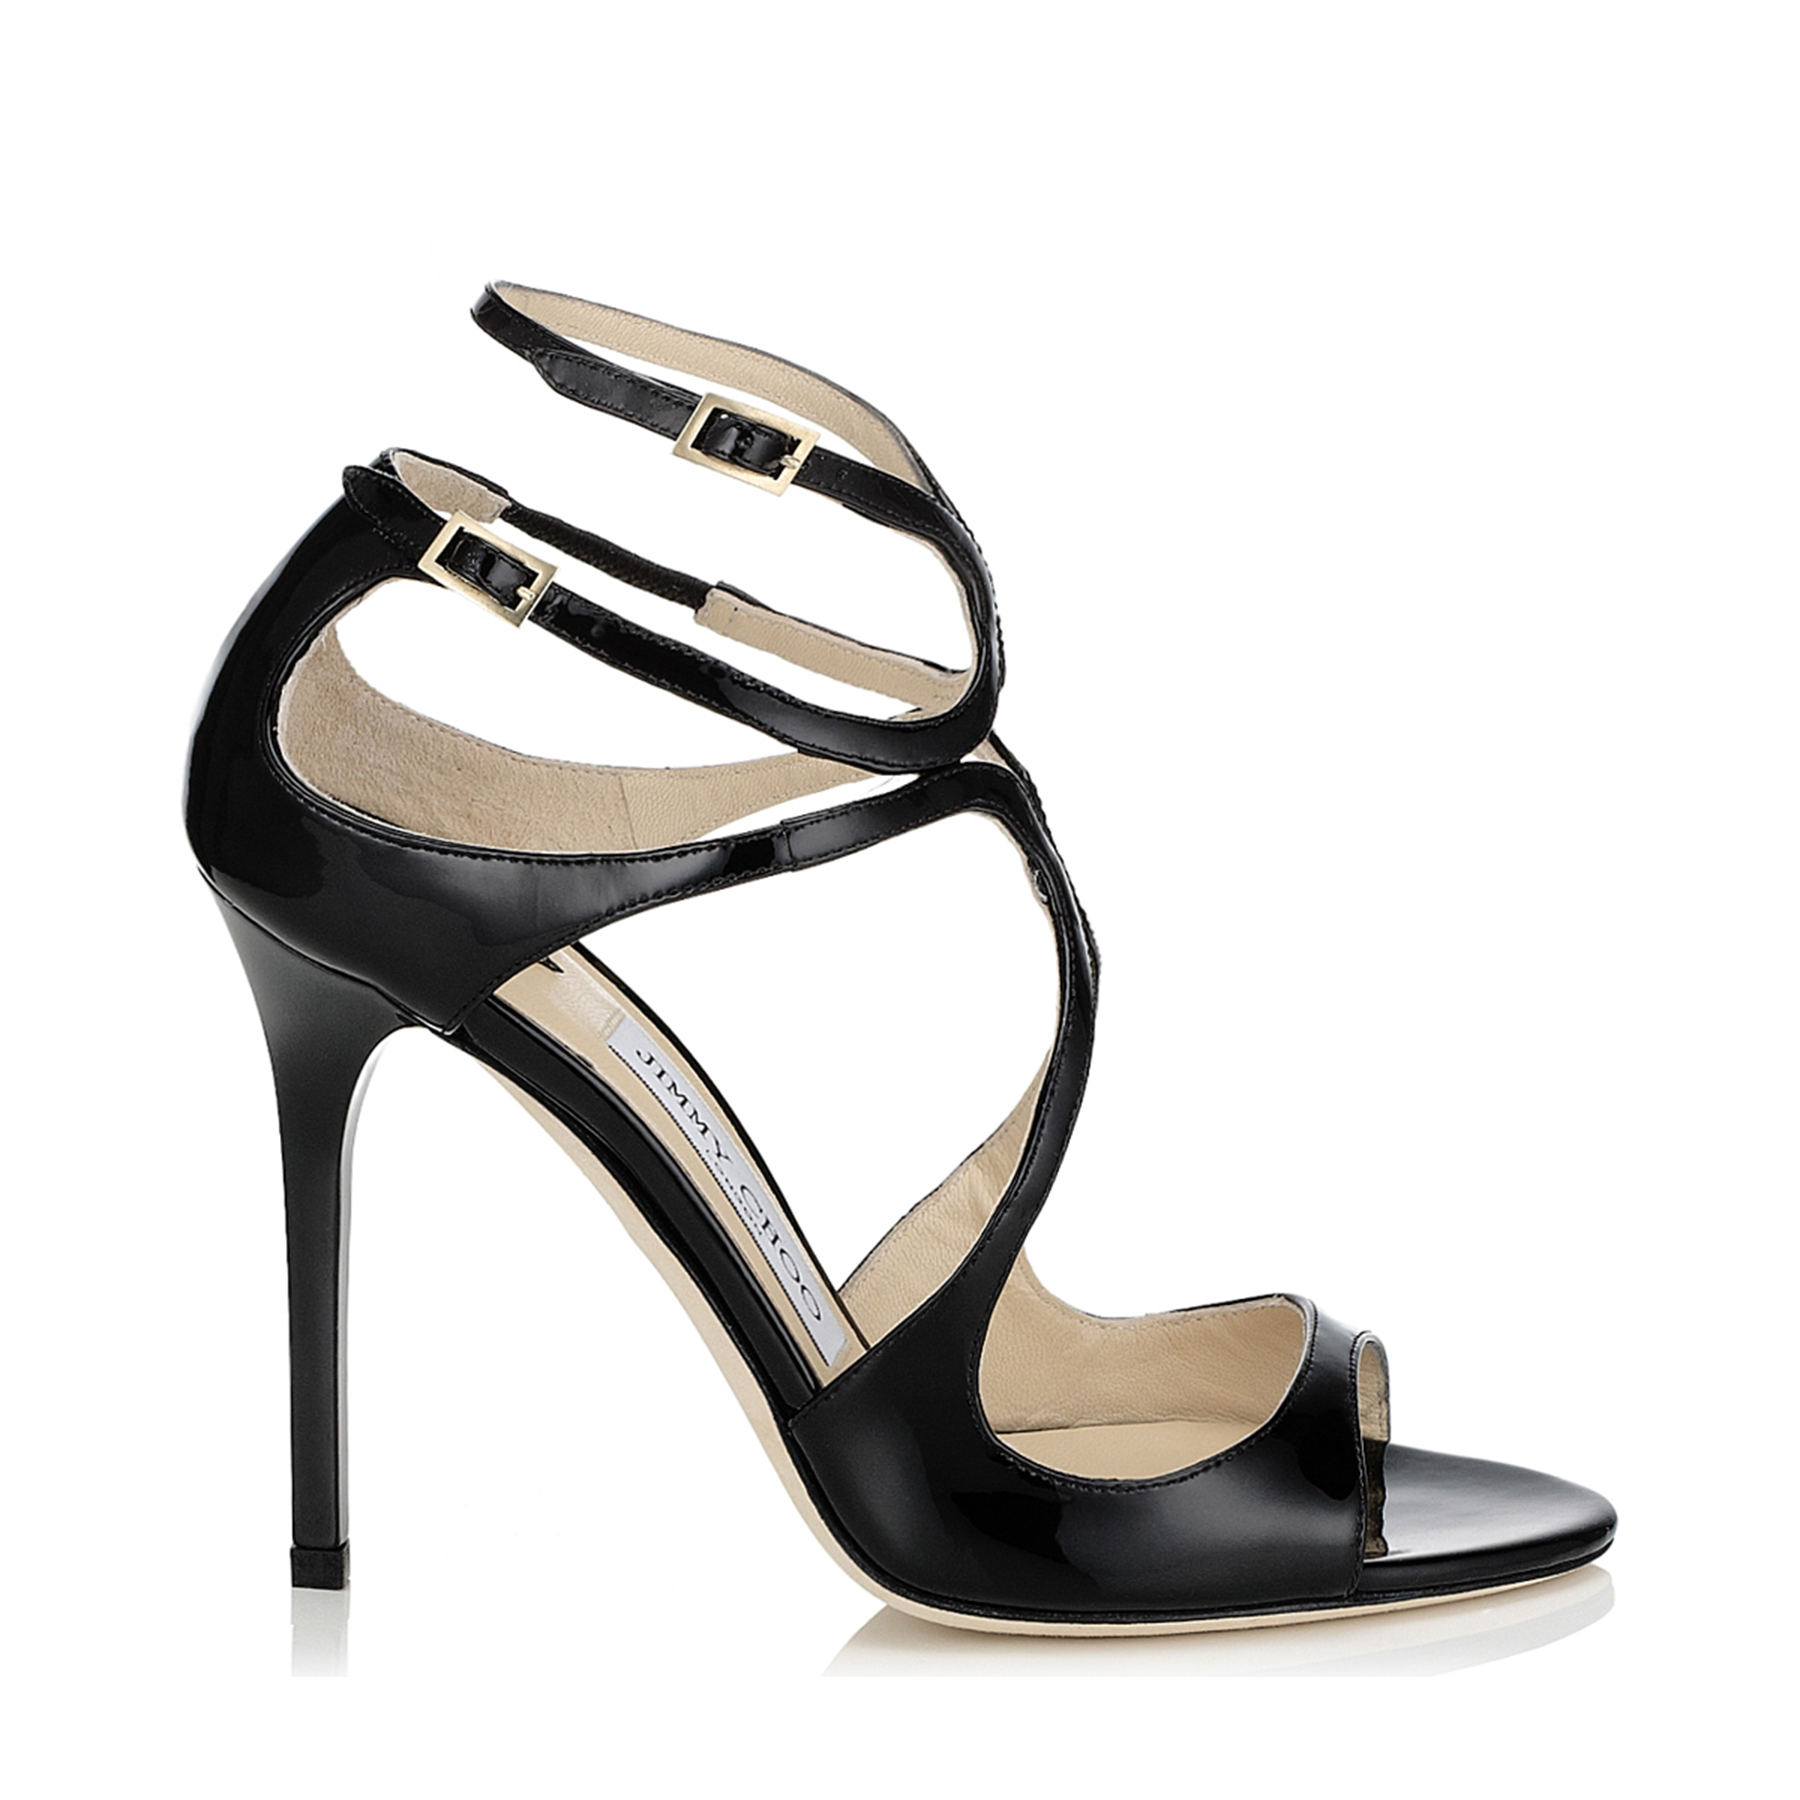 LANG Black Patent Strappy Sandals by Jimmy Choo